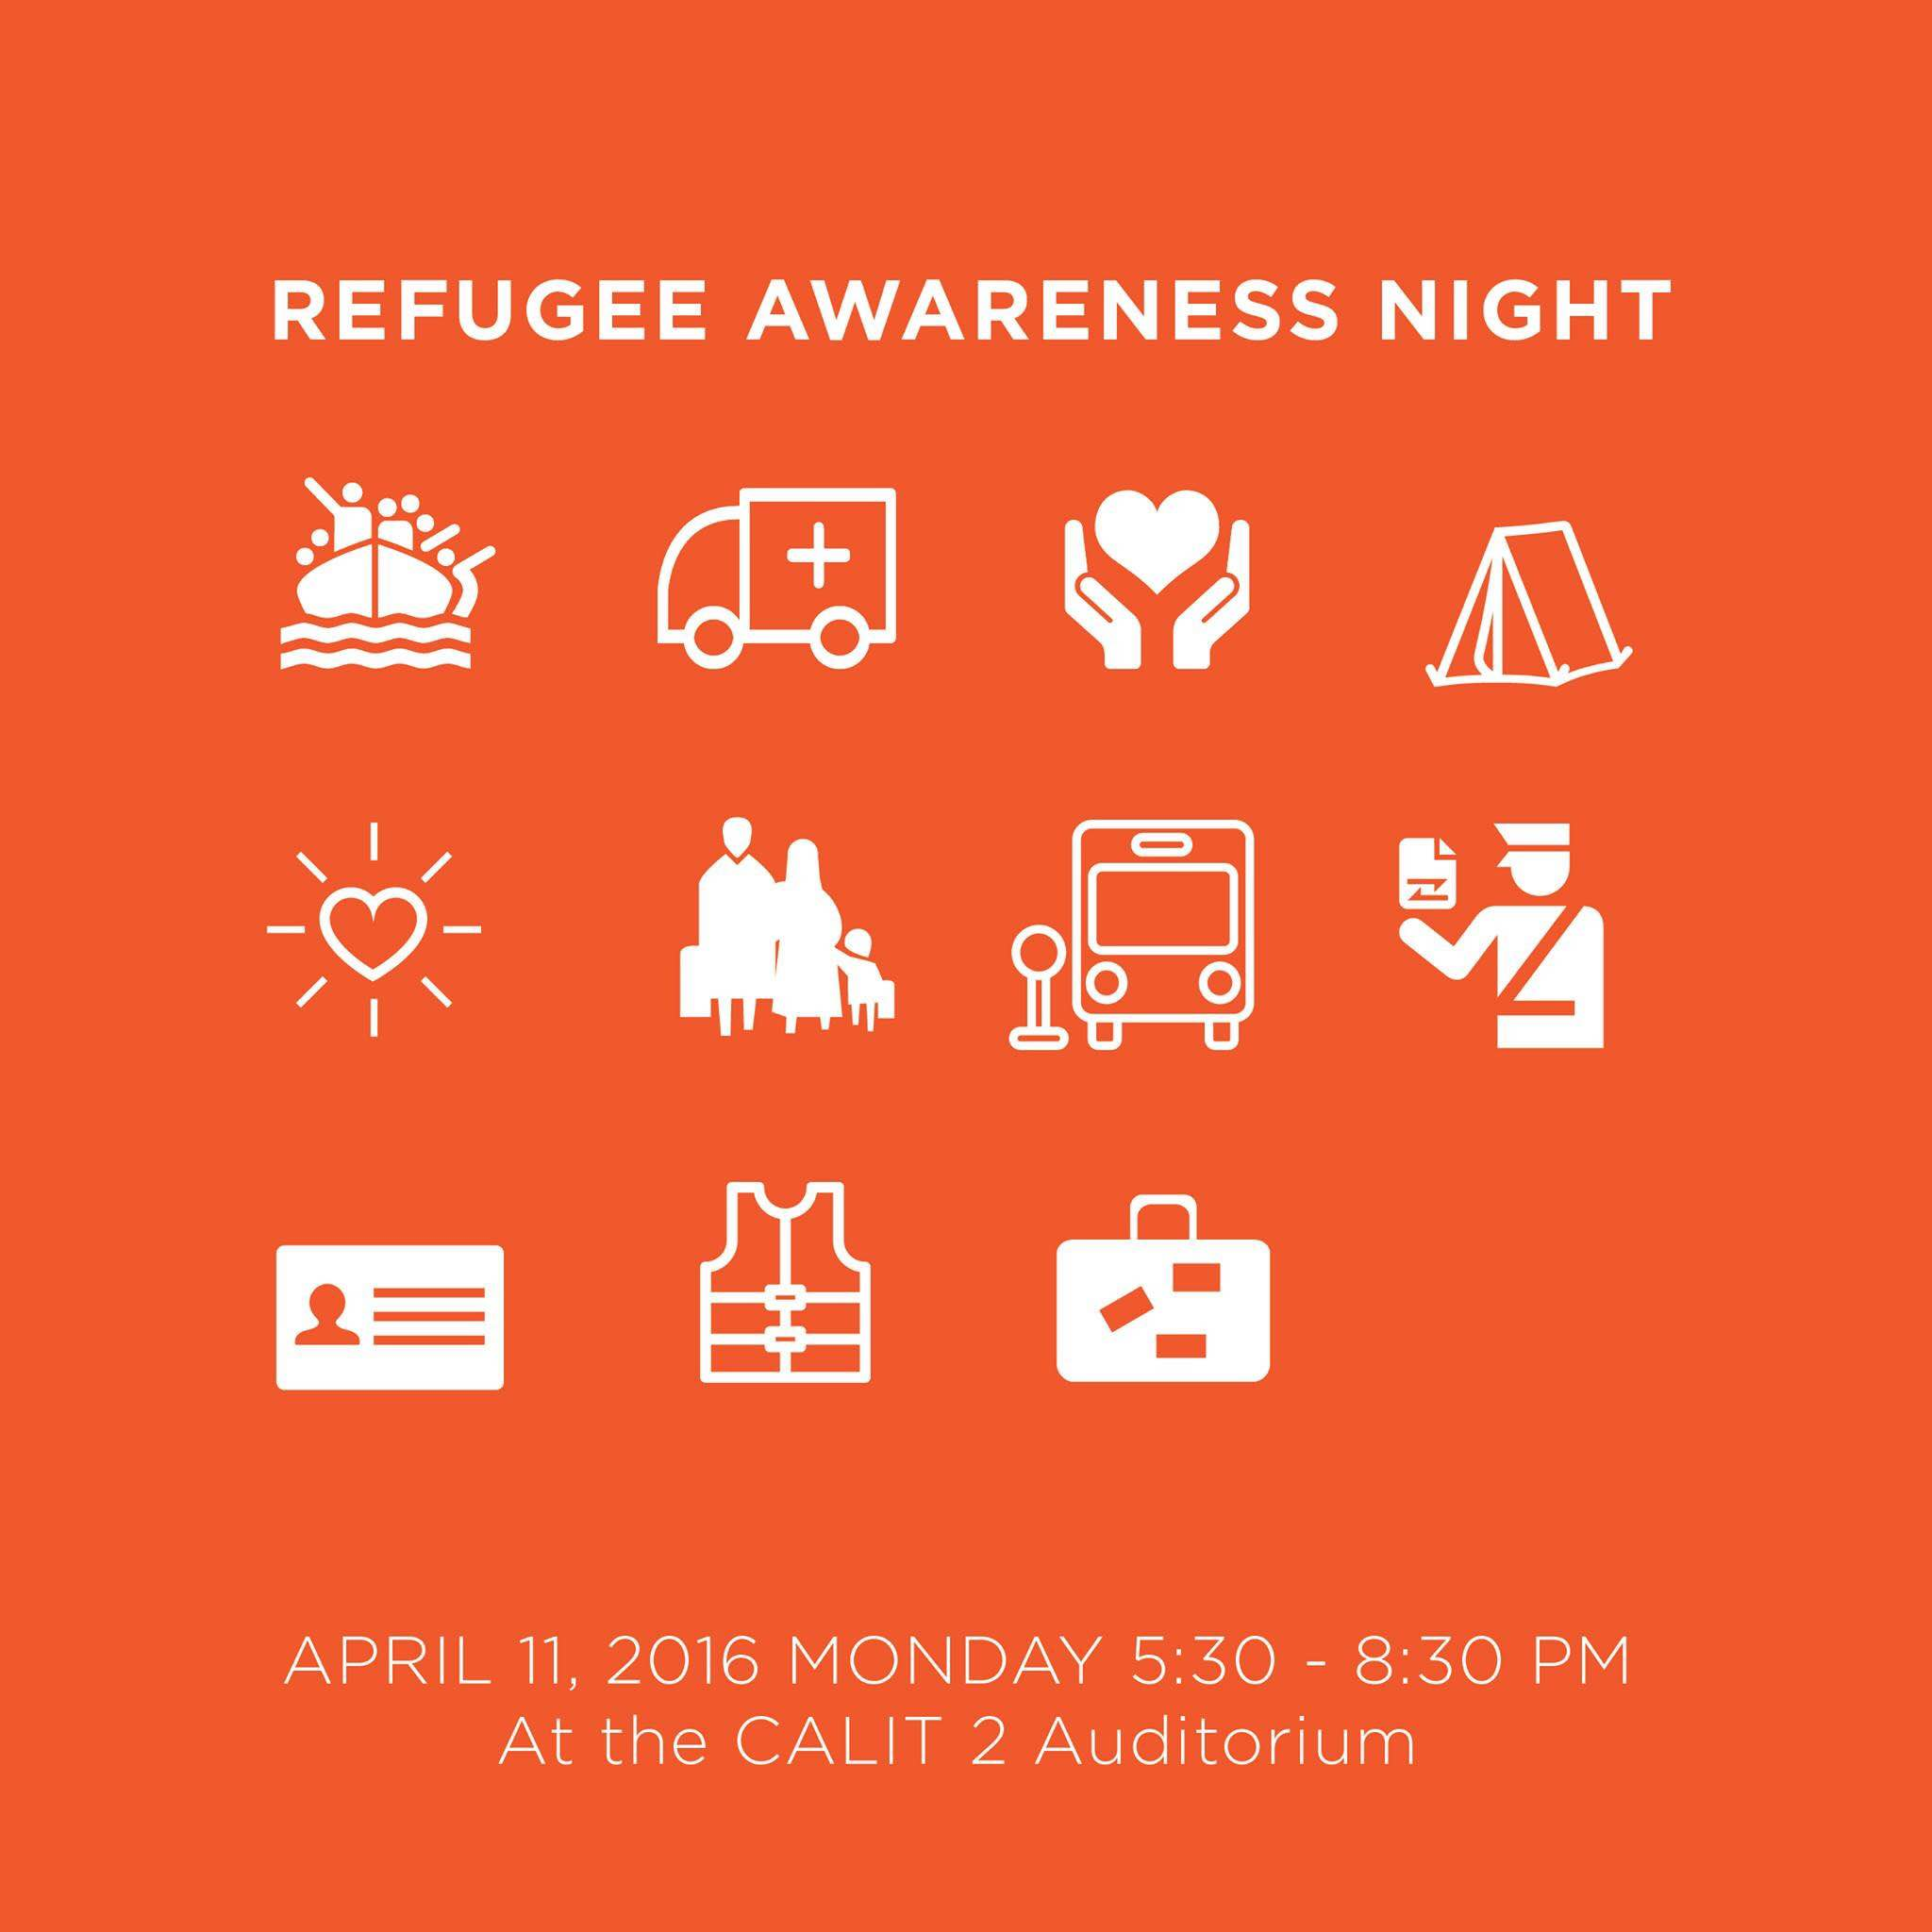 Student Event: Refugee Awareness Night -- Hosted by Fresh S.T.A.R.T. -- Mon., 4/11/16 at 5:30 PM - 8:30 PM in Calit2 Auditorium